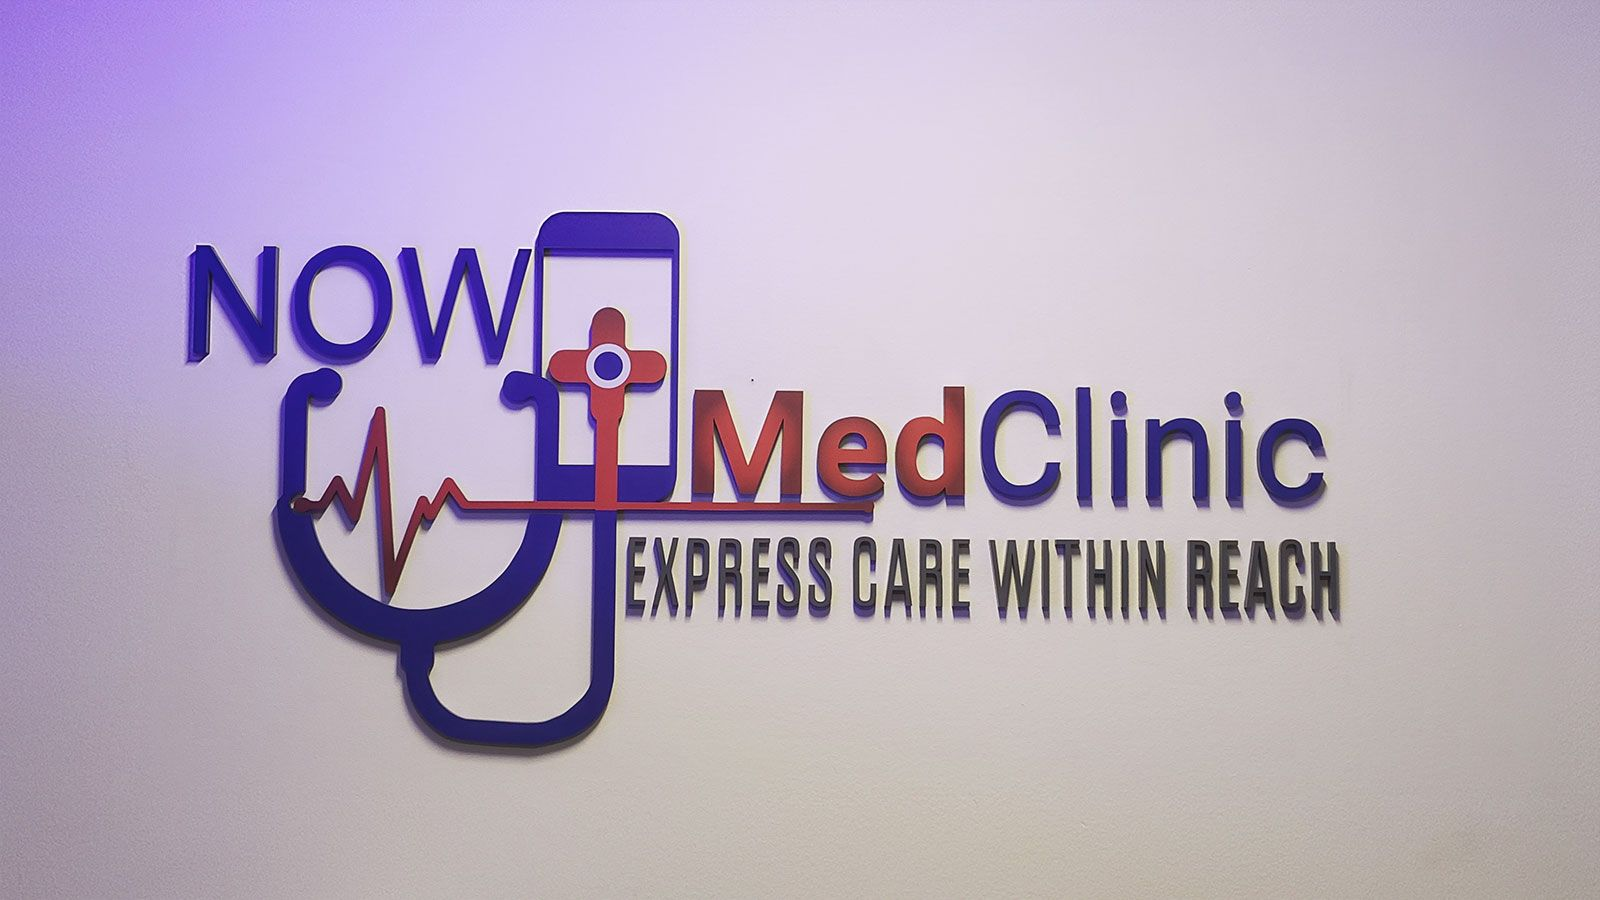 Now Med Clinic 3D letters